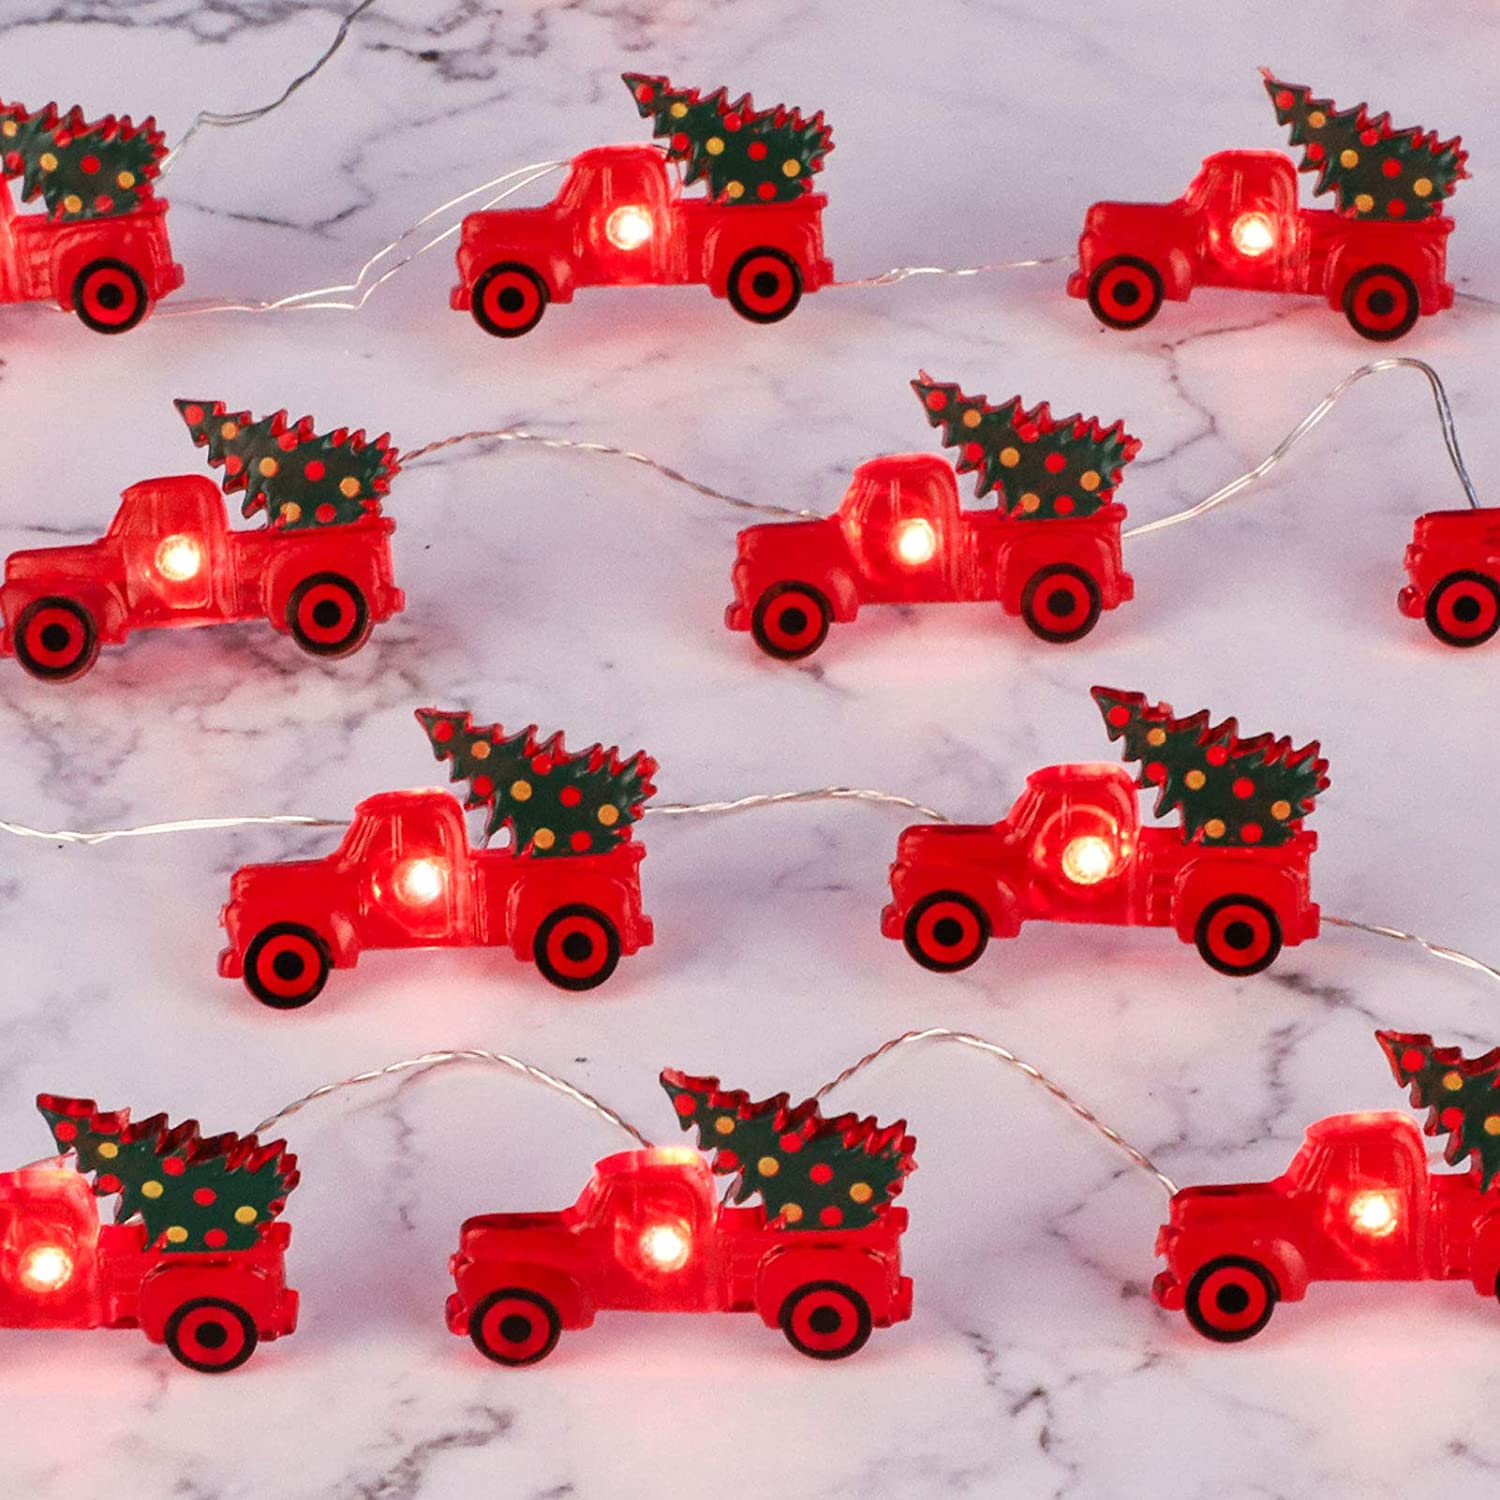 Impress Life Christmas Tree Farmhouse Truck String Lights Decoration, 10ft 30 LEDs, Battery USB Plug-in Powered with Remote Control, Indoor Fairy Lights for Party Xmas Tree Decor